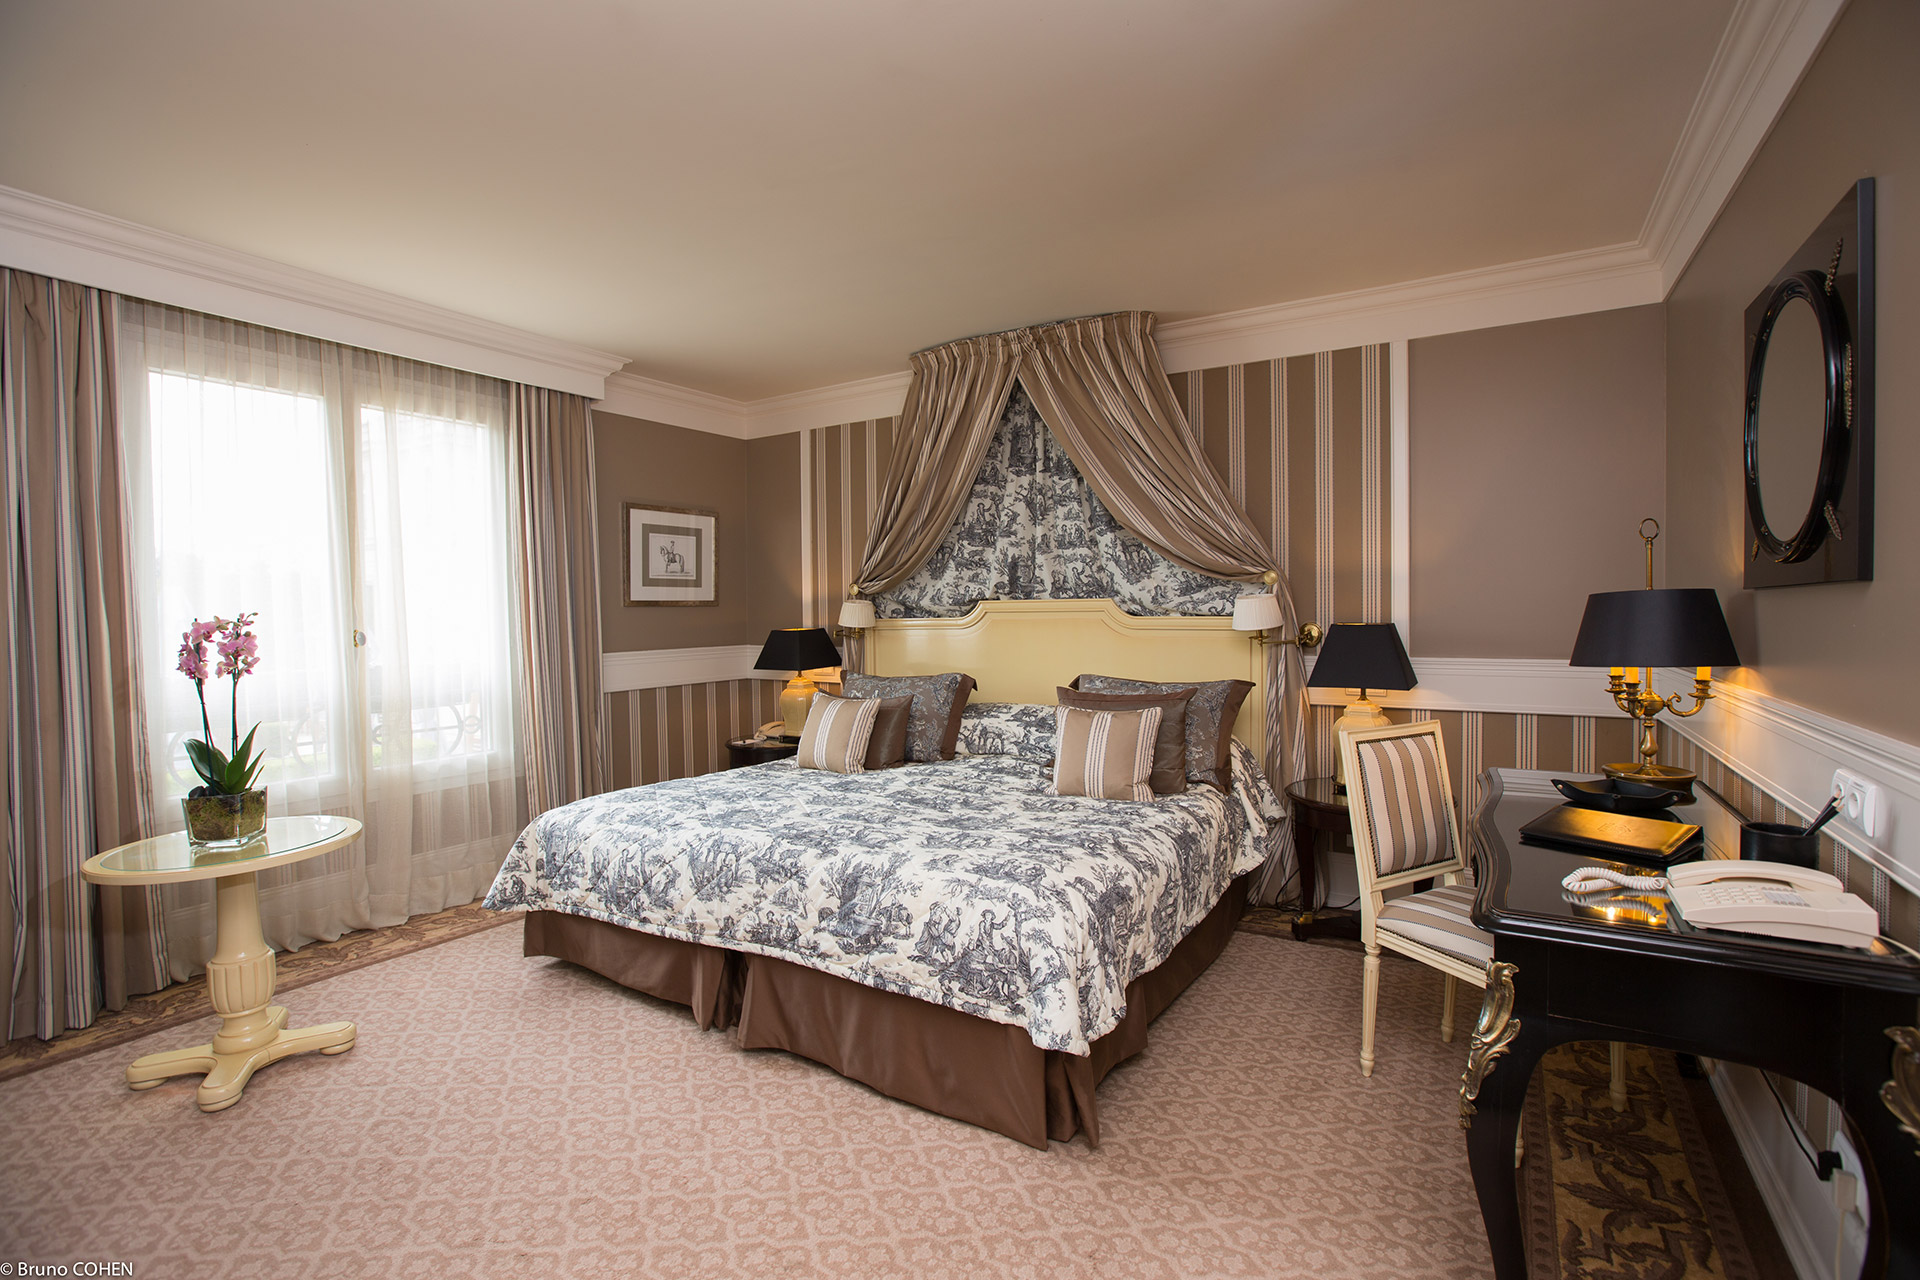 467/import-from-v1/images/Chambres/Chambre Superieure/20160509_1303.jpg